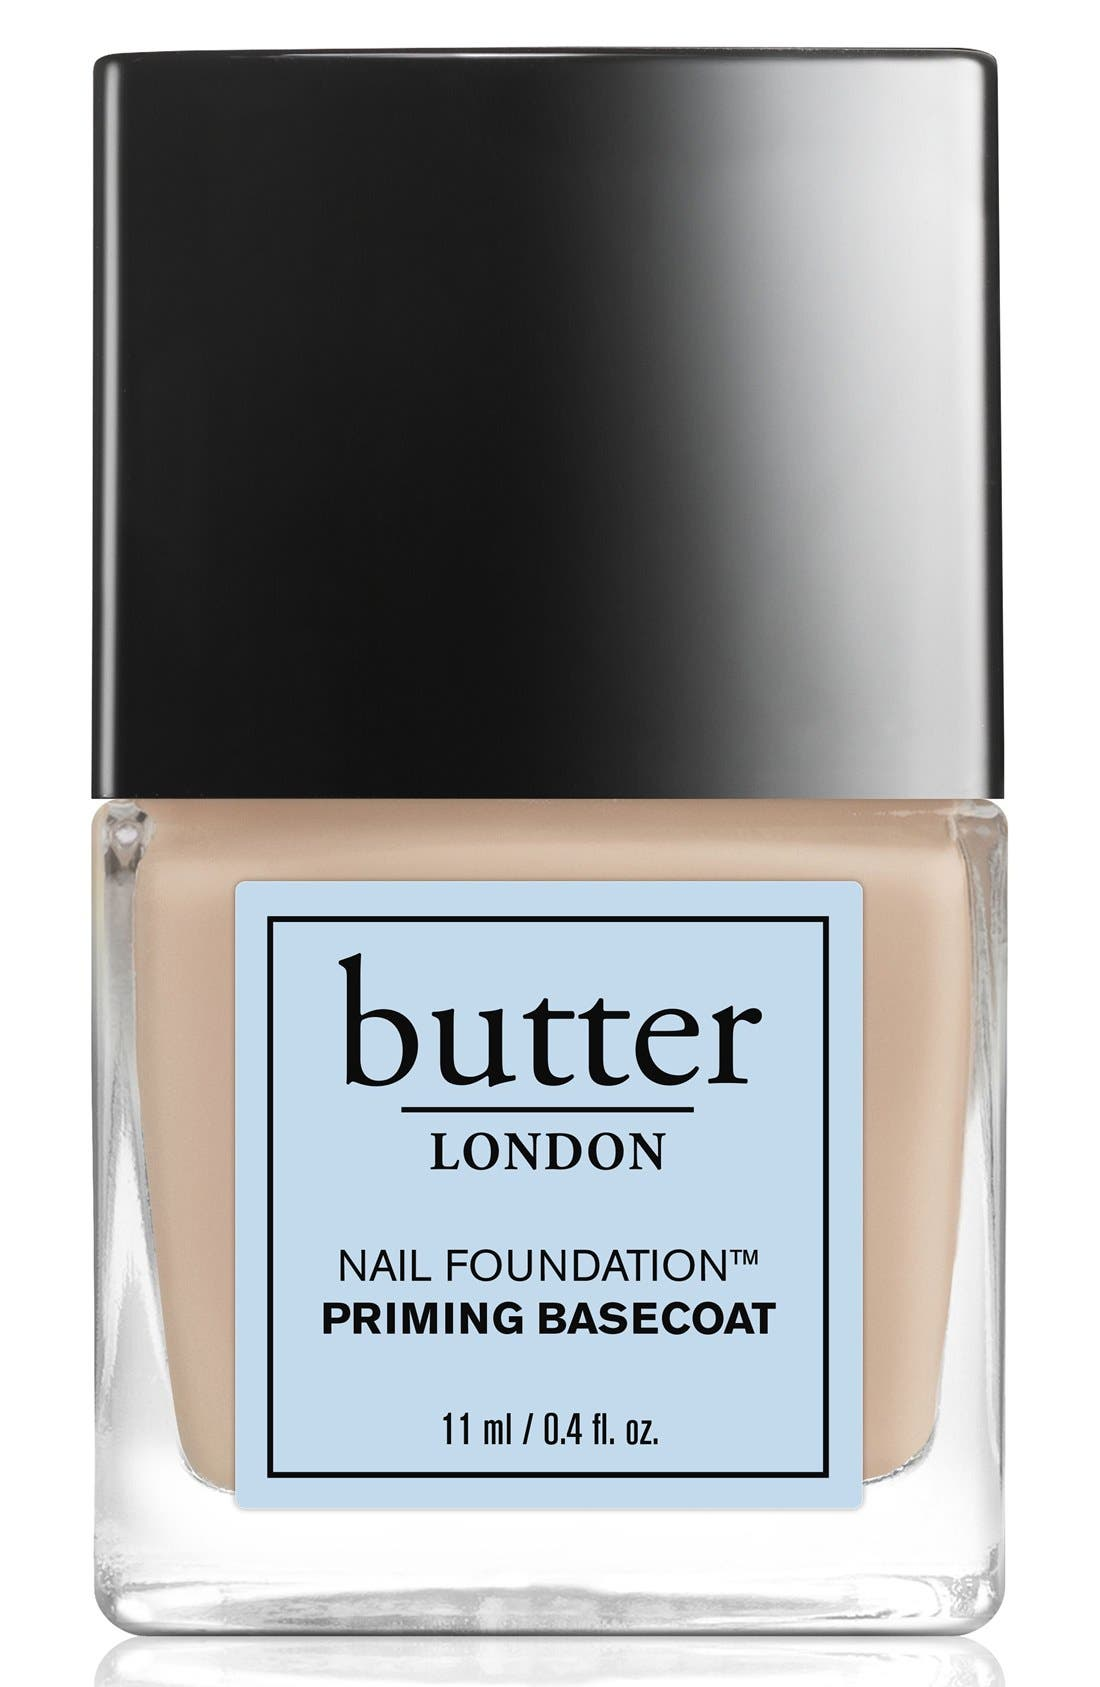 butter LONDON 'Nail Foundation™' Priming Basecoat